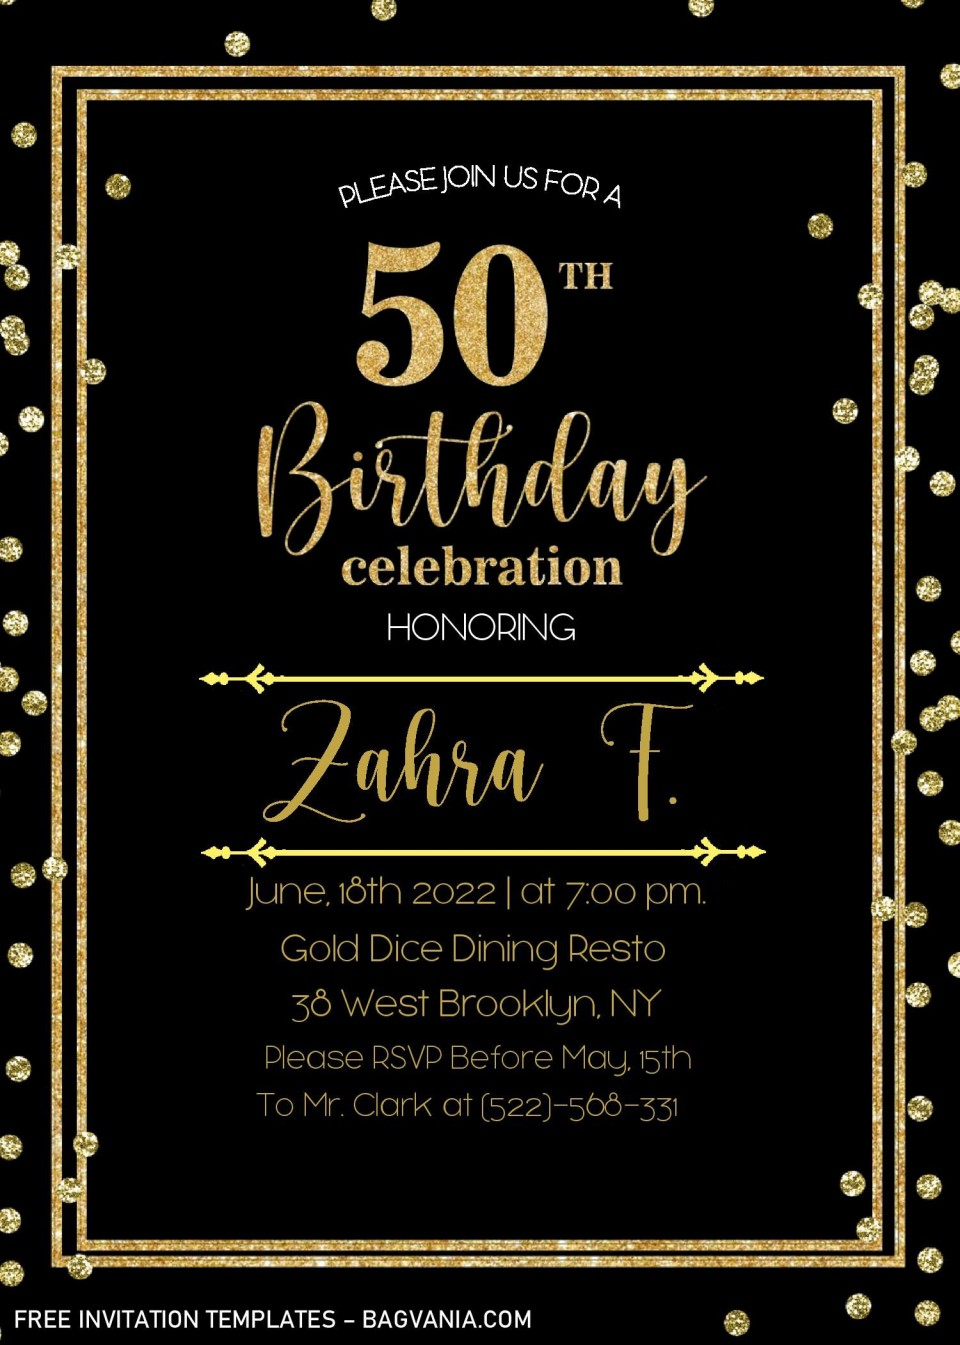 002 Striking Microsoft Word 50th Birthday Invitation Template Image  Wedding Anniversary Editable960